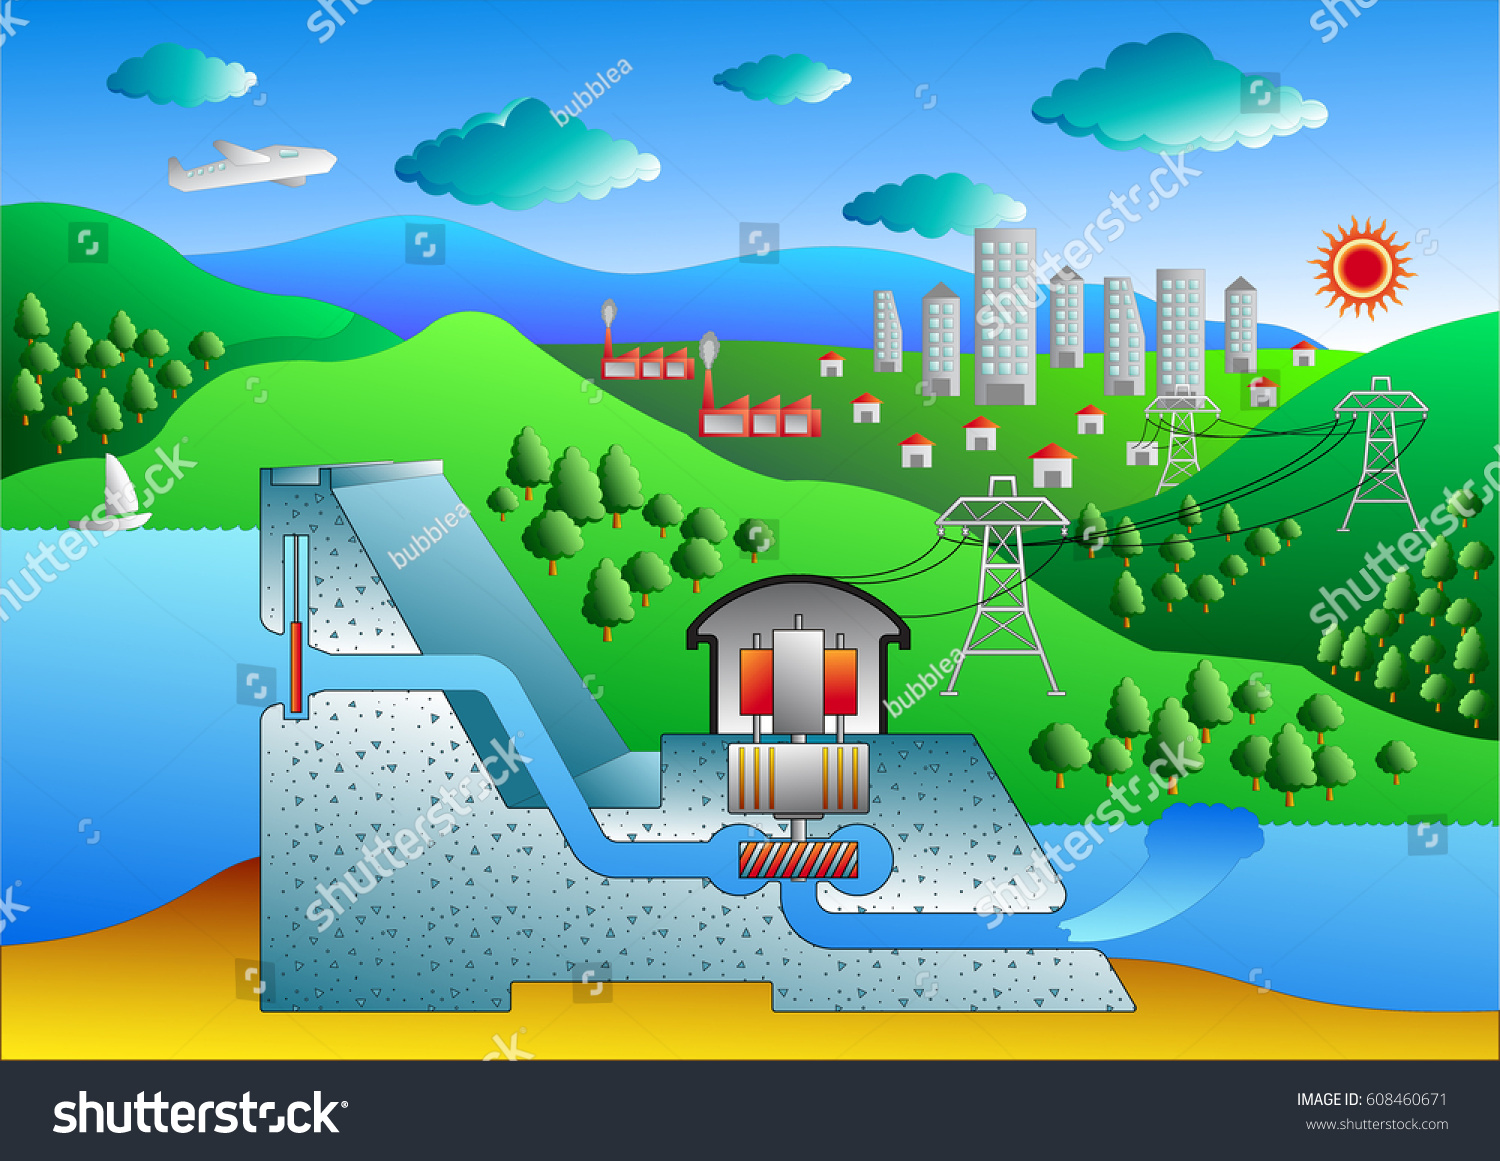 hight resolution of cross section of a conventional hydroelectric dam diagram vector art for graphic or website layout vector